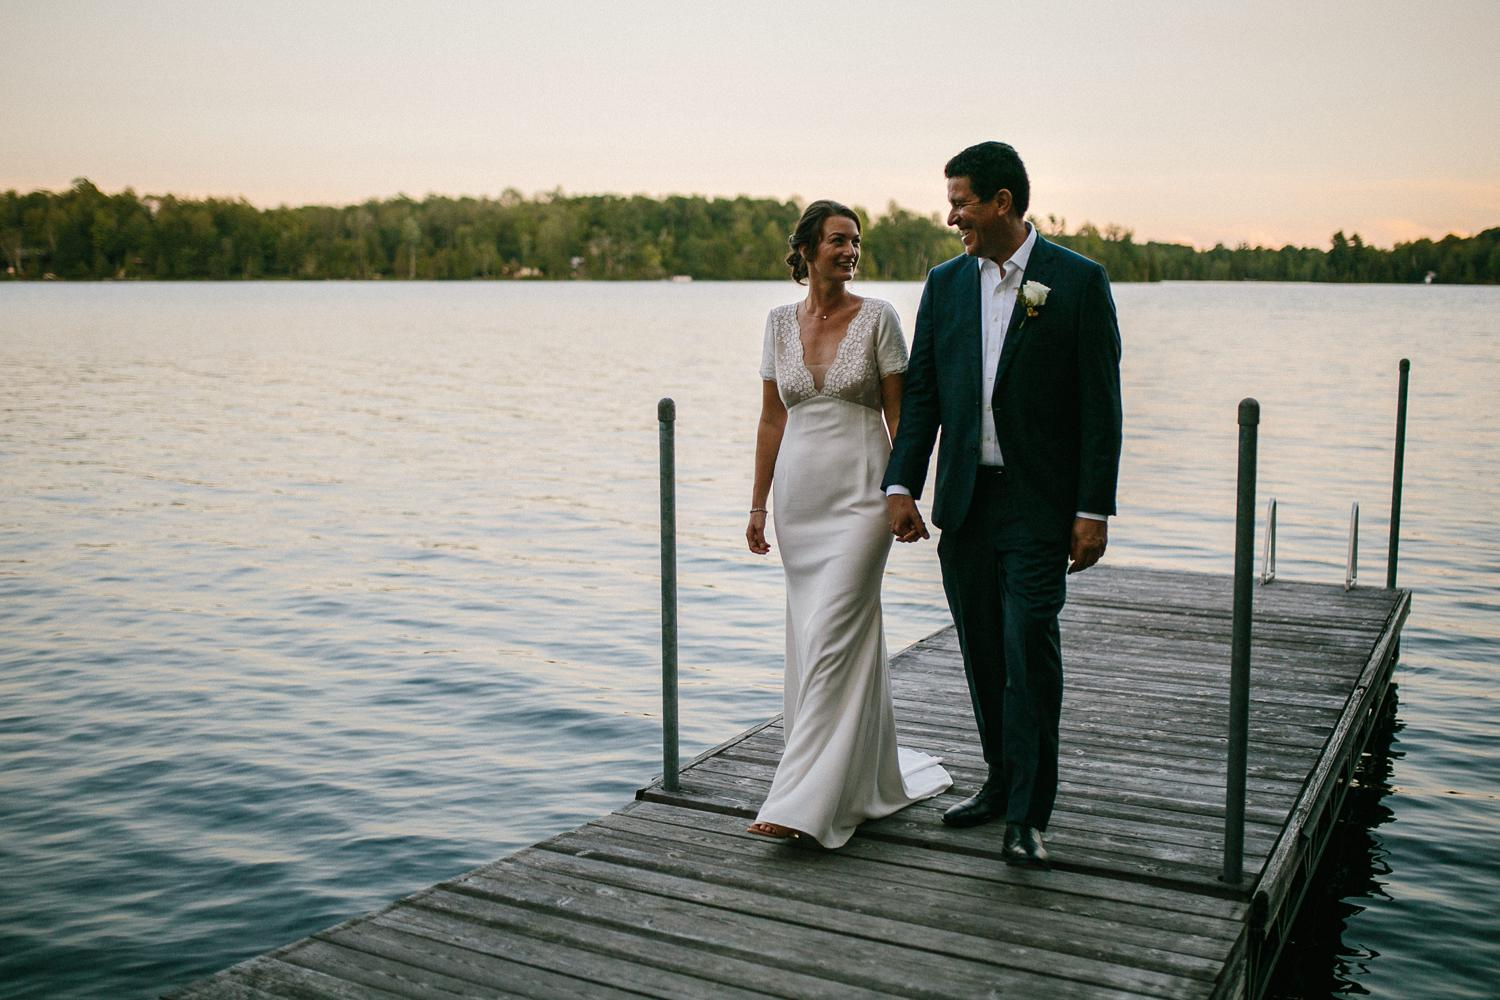 otty lake cottage wedding perth ontario-205.jpg